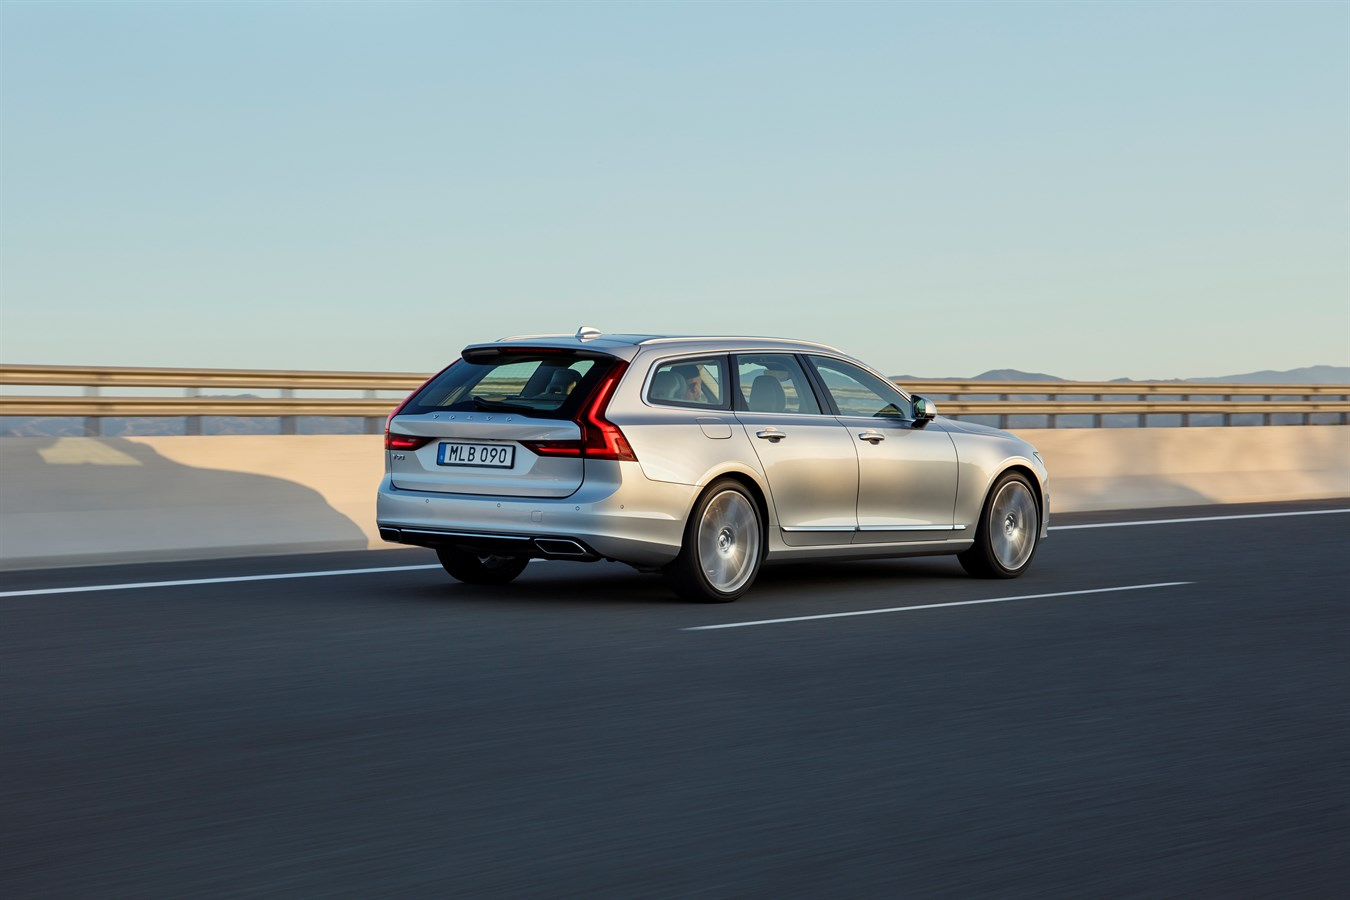 2017 Volvo V90 Wagon rear 3/4